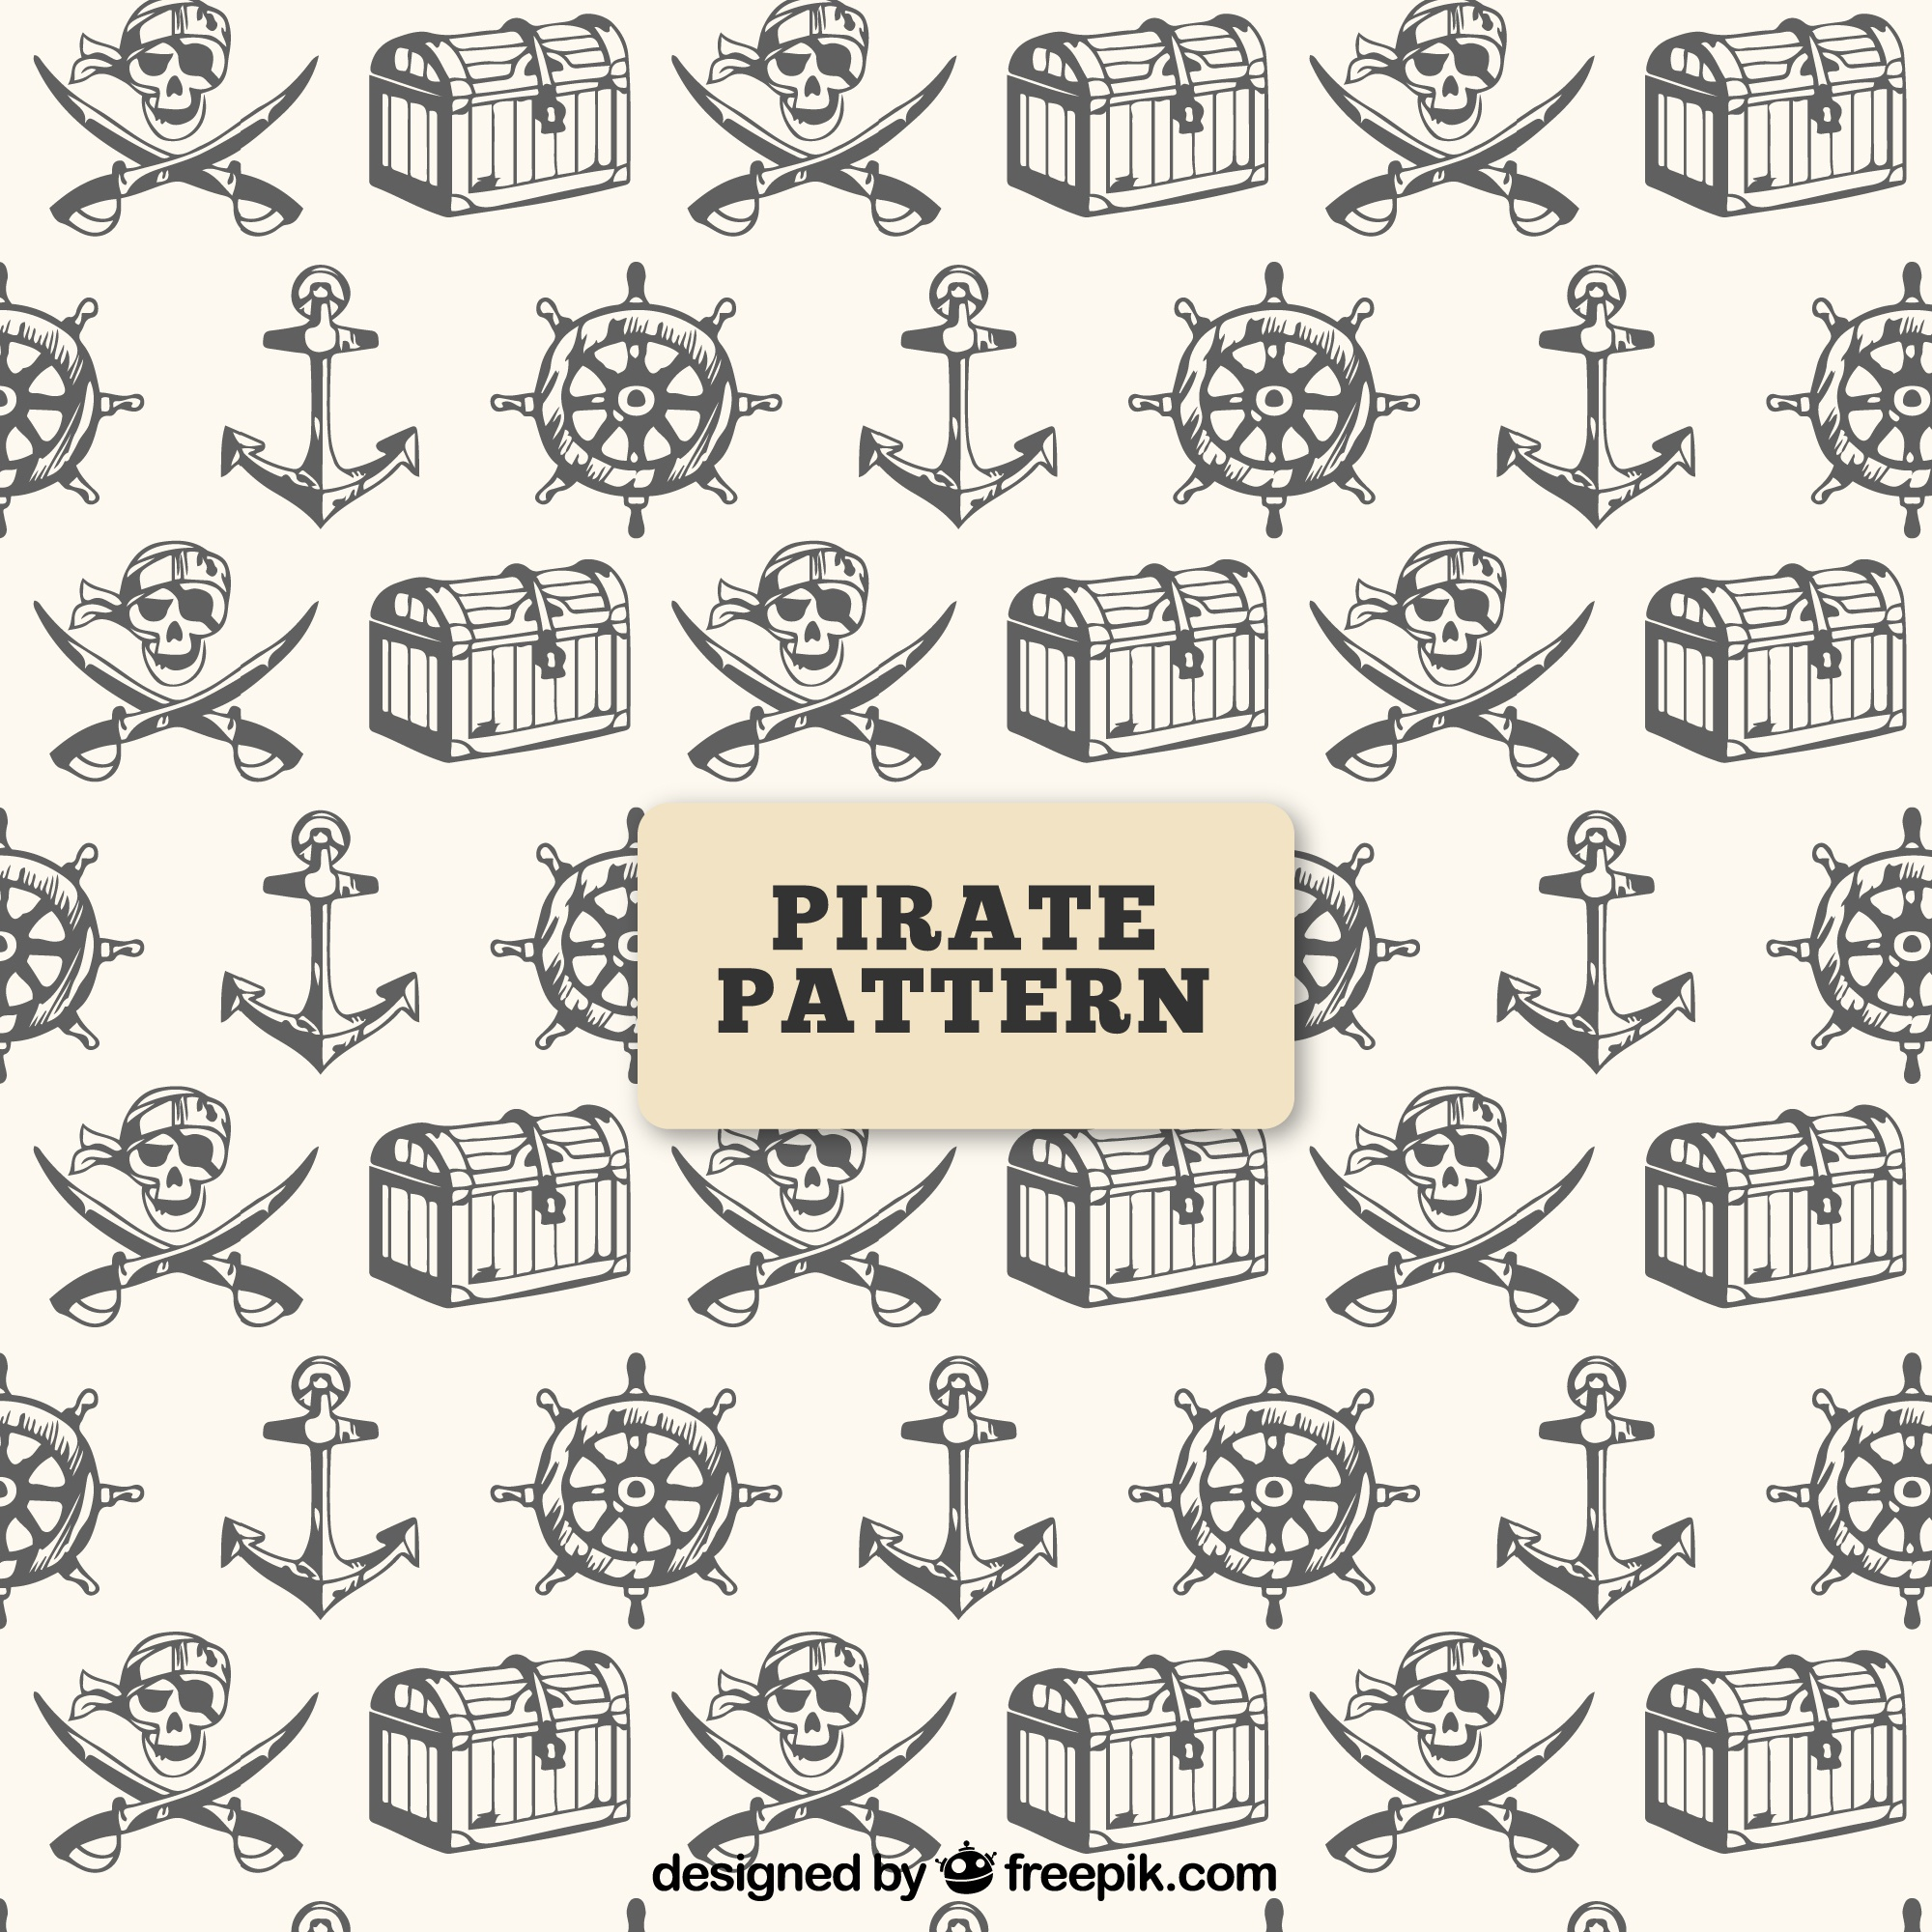 Pirate pattern with hand drawn objects